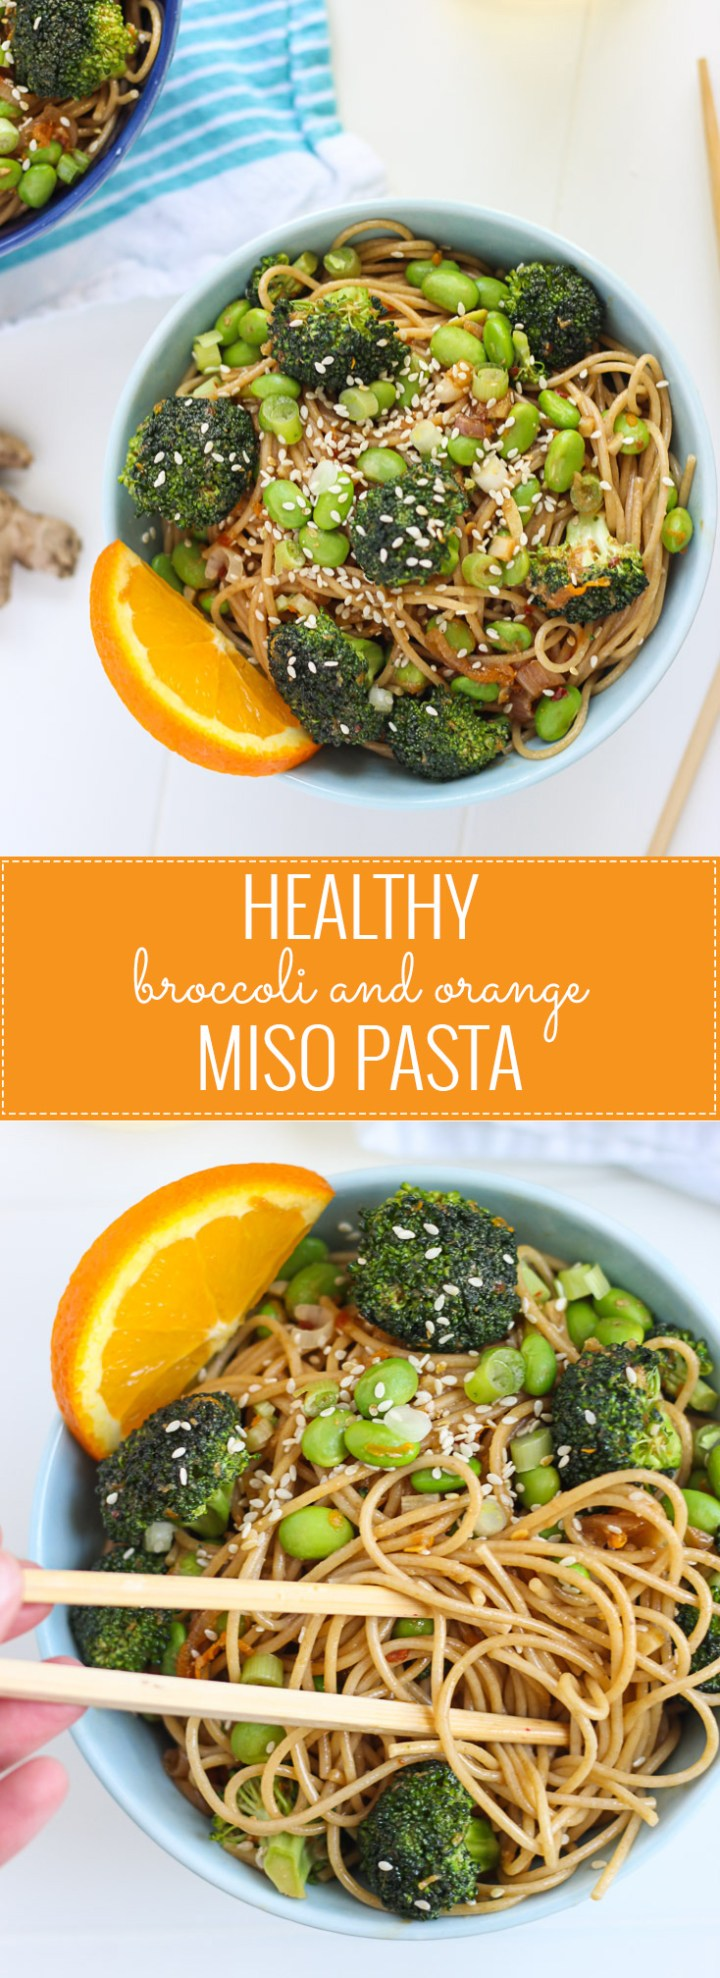 "Healthy Broccoli and Orange Miso Pasta - ready in under 30 minutes and will satisfy your ""take out"" craving!"